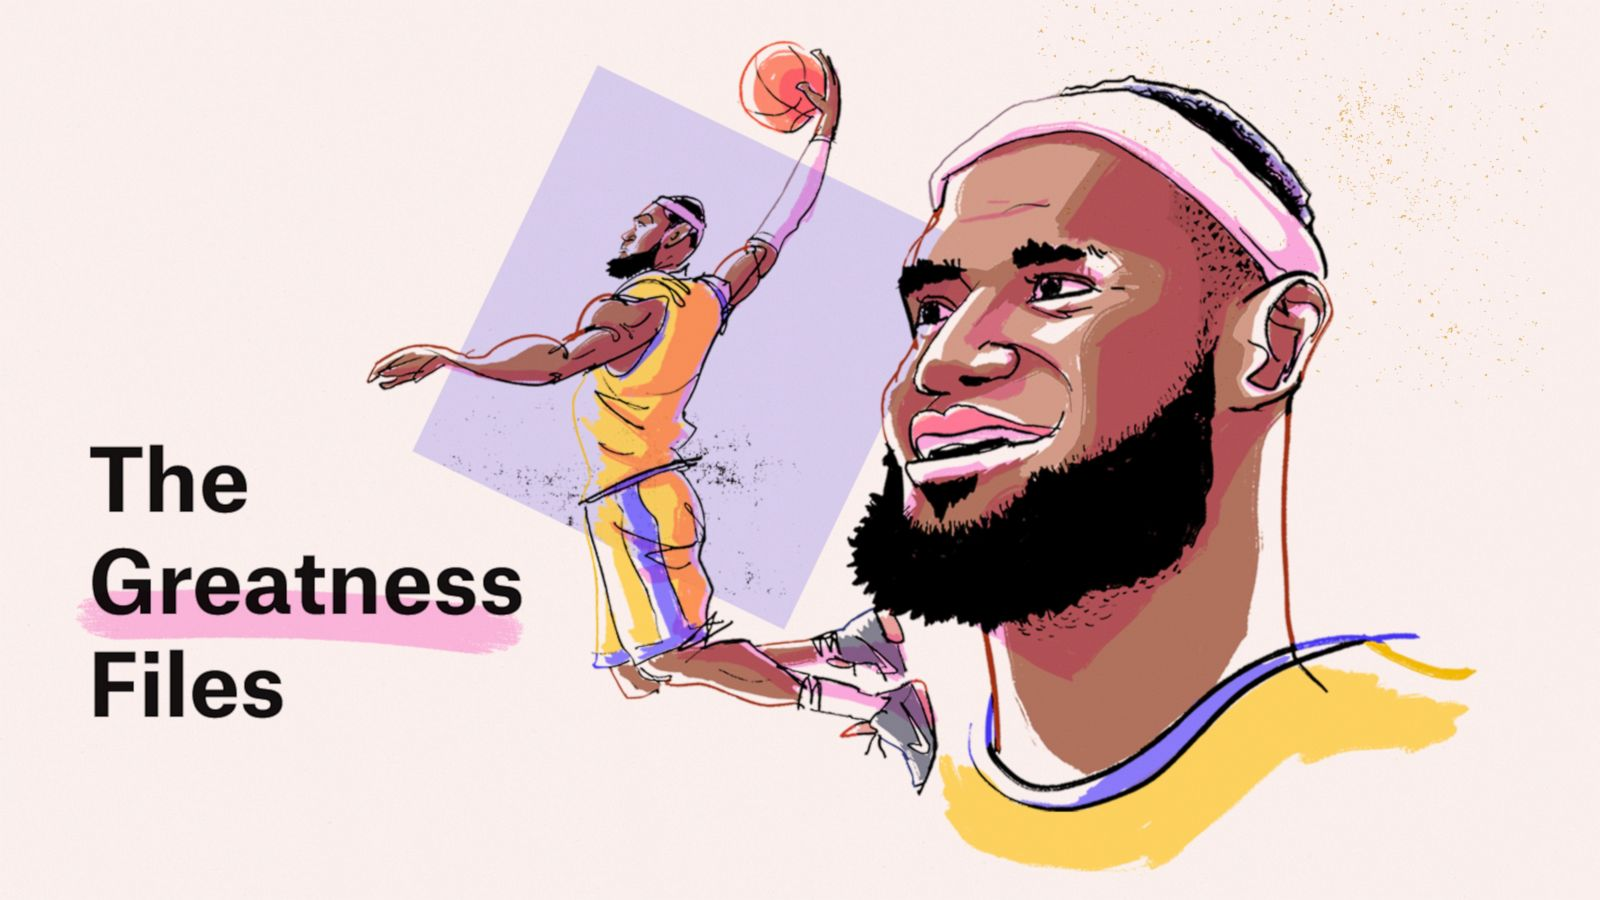 What makes LeBron James so great | FiveThirtyEight